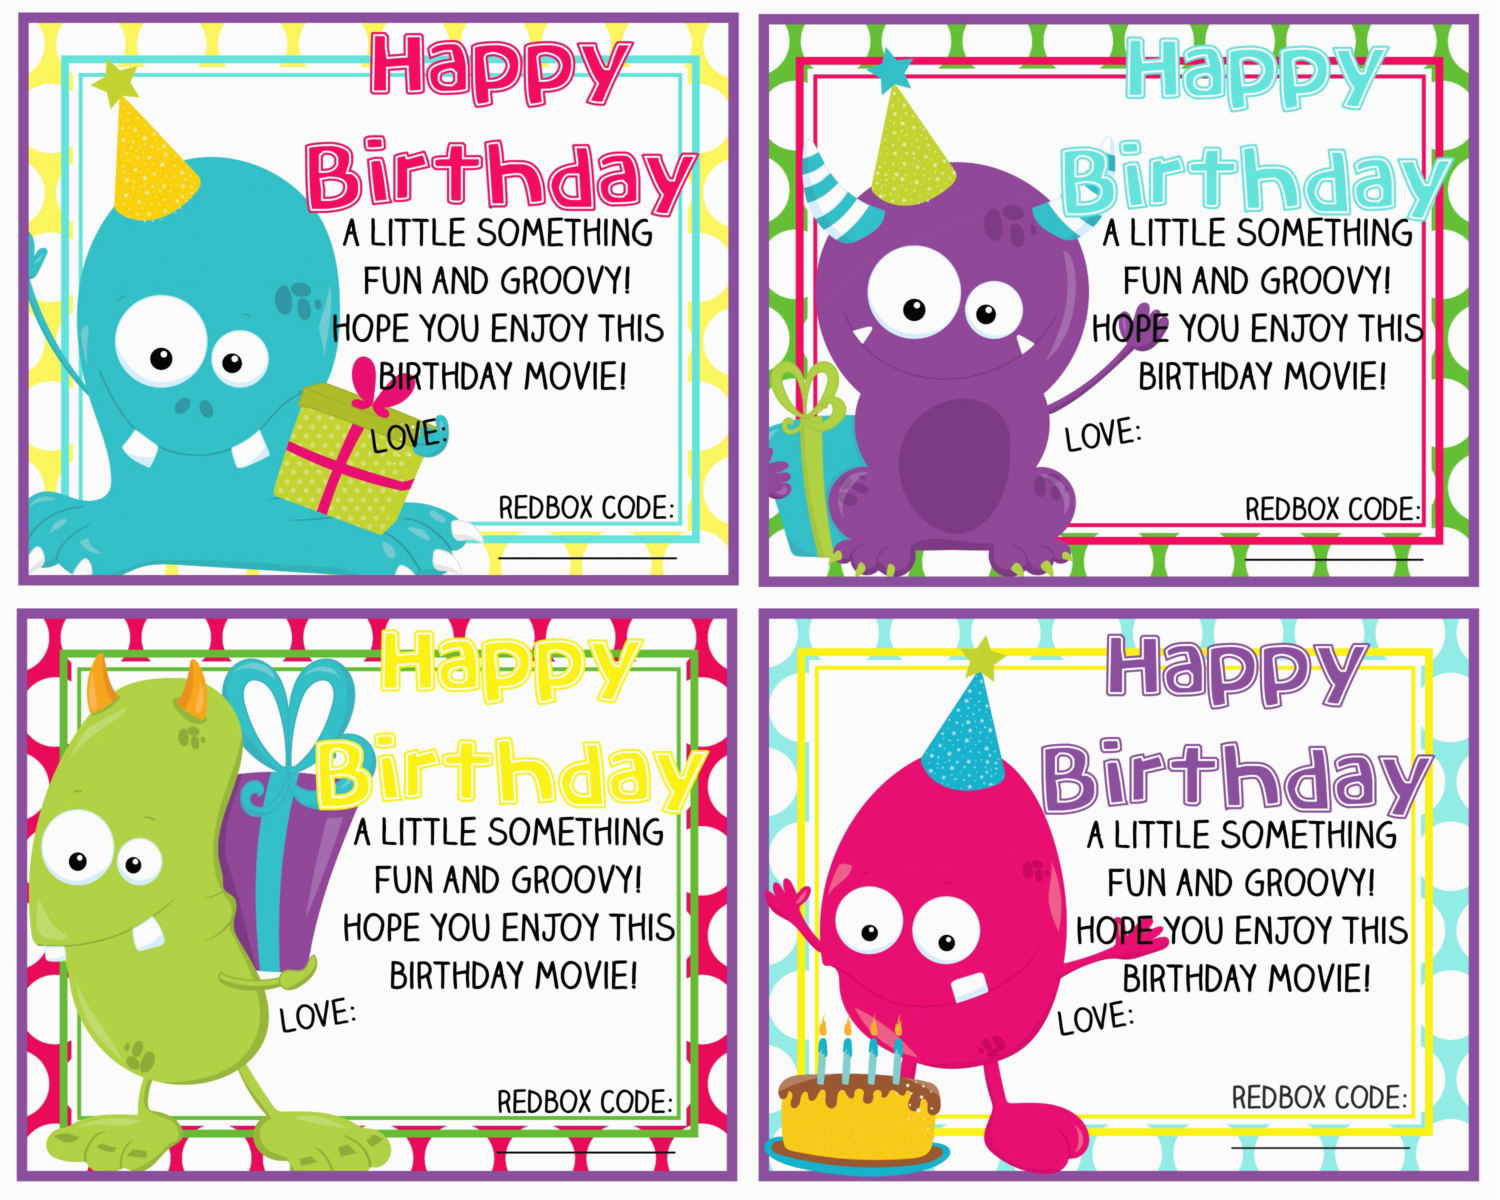 printable redbox birthday gift card happy birthday monsters